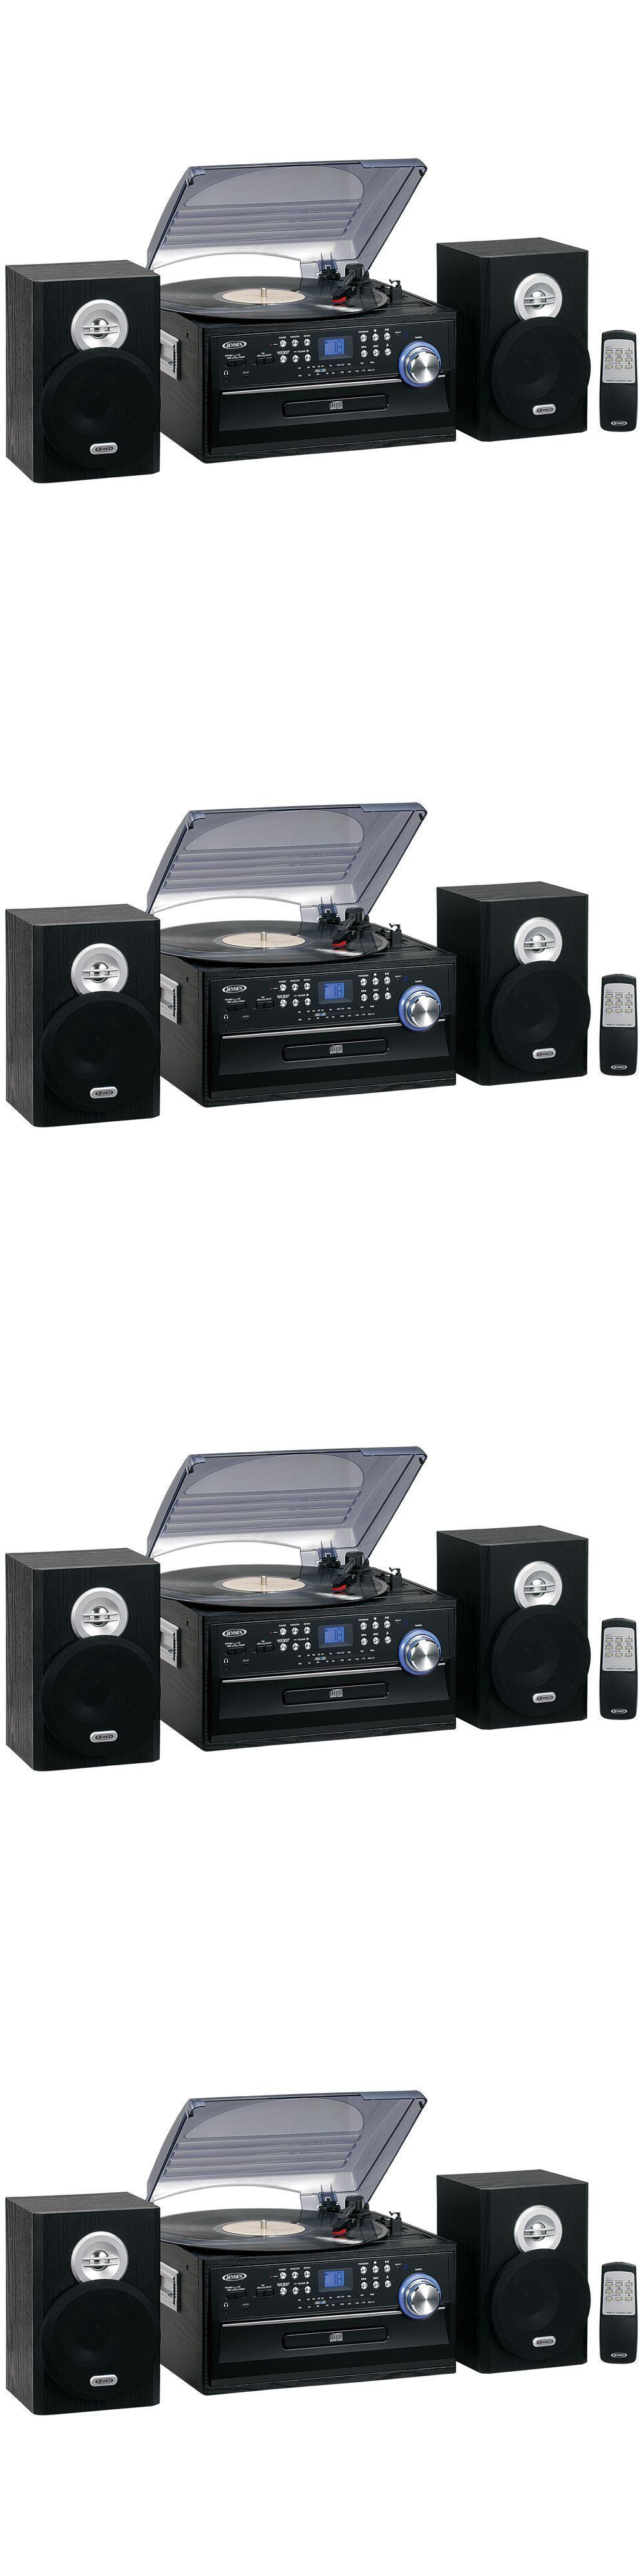 Record Players Home Turntables: Jensen Am Fm Radio 3 Speed Turntable Cd